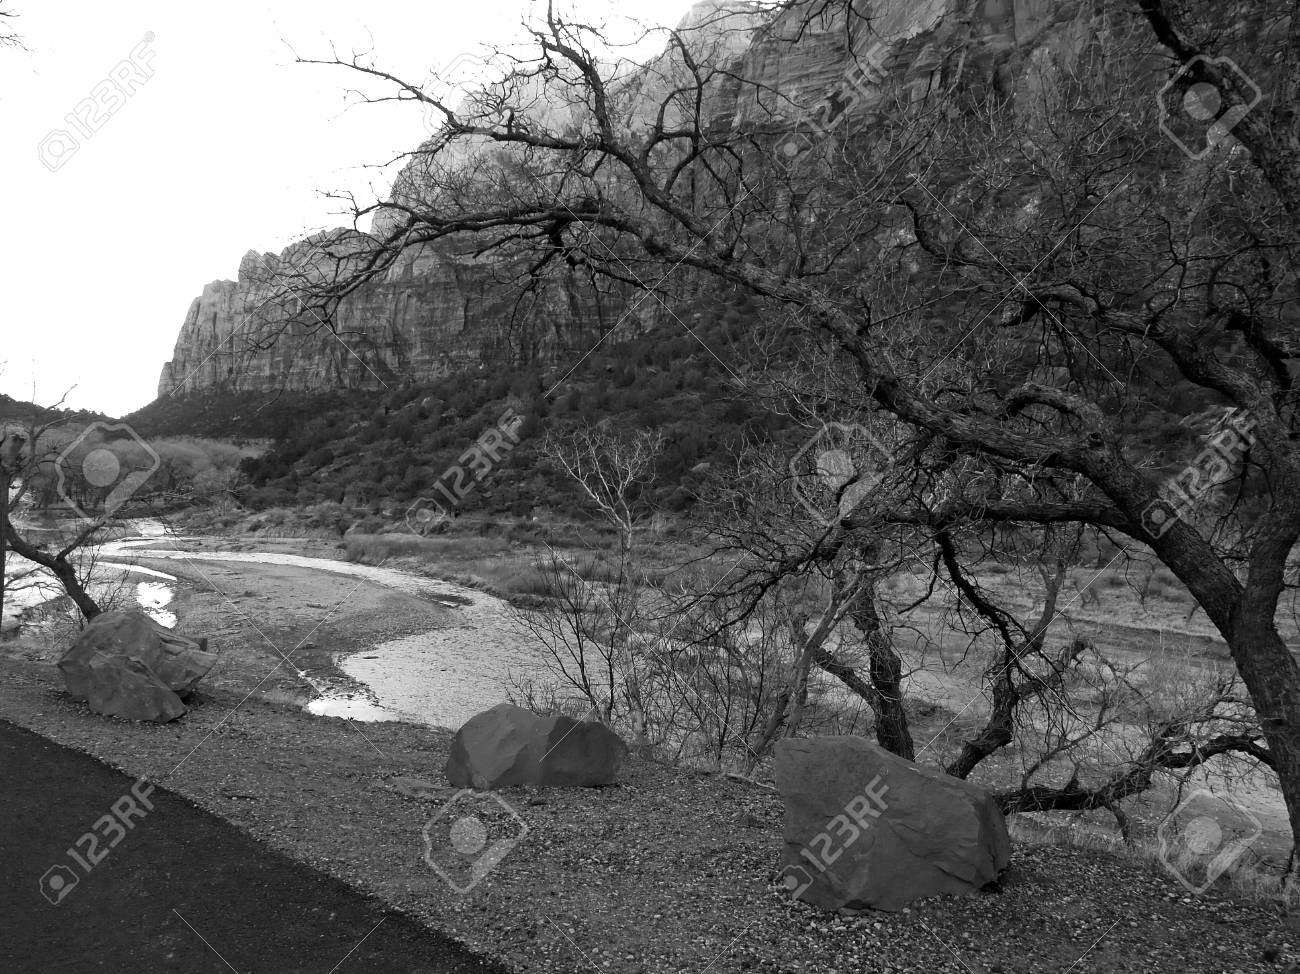 The zion national park in utah usa in black and white stock photo 1483289